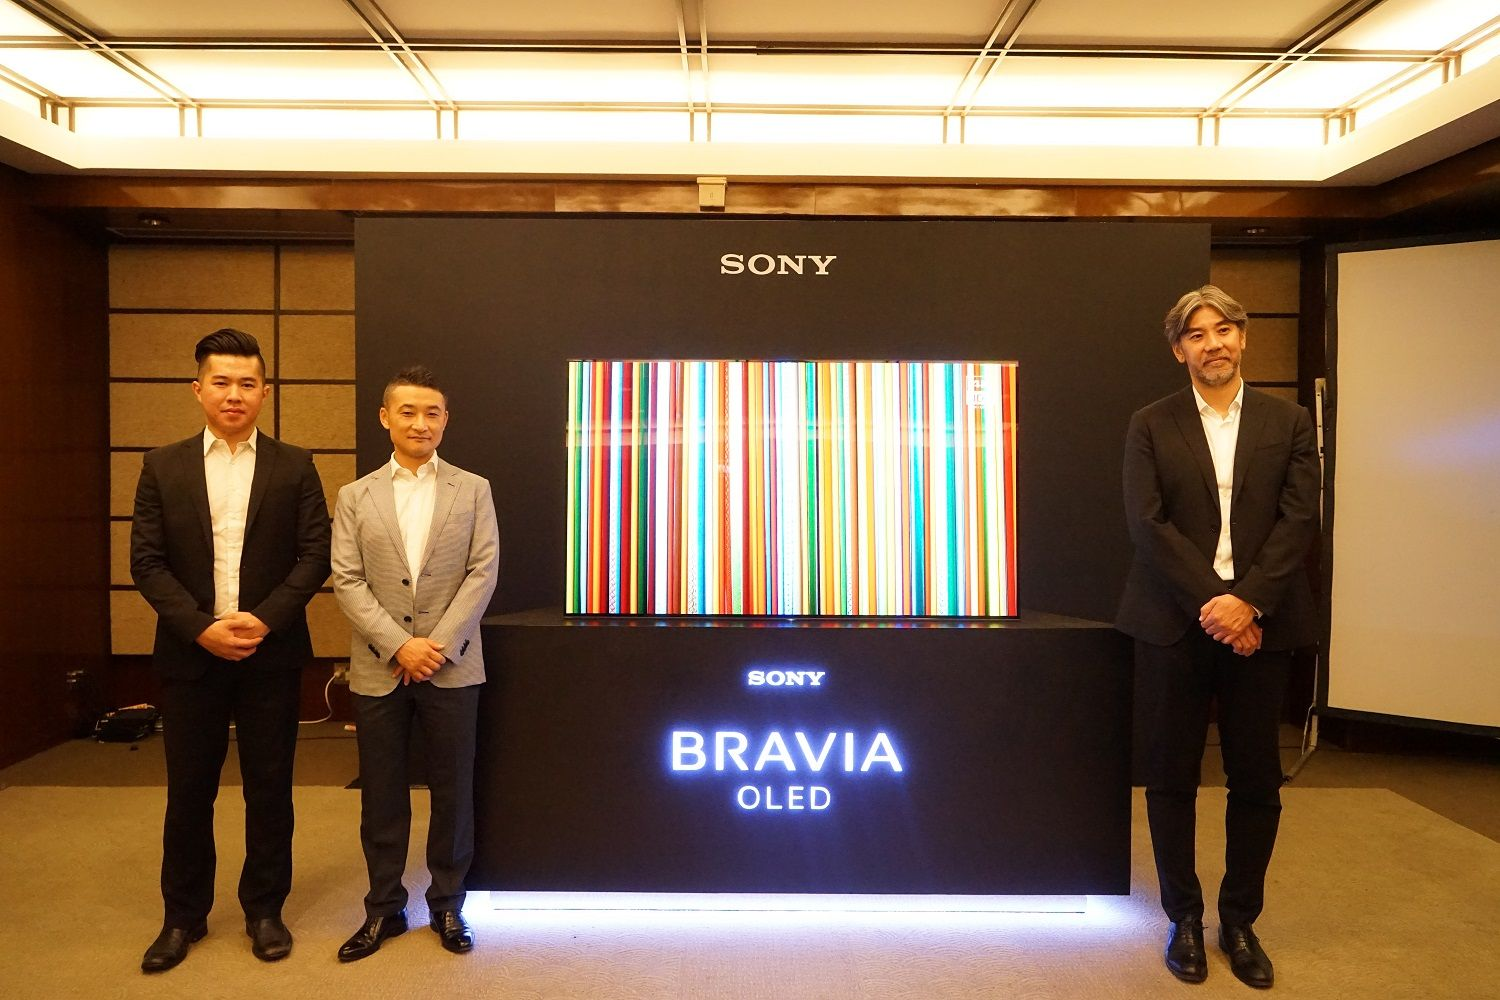 Ki Ka Riki Siuwandy Product Marketing Of Sony Indonesia Kentaro Hatanaka Marketing Director Of Sony Indonesia Kazuteru Makiyama President Director Of Sony Indonesia